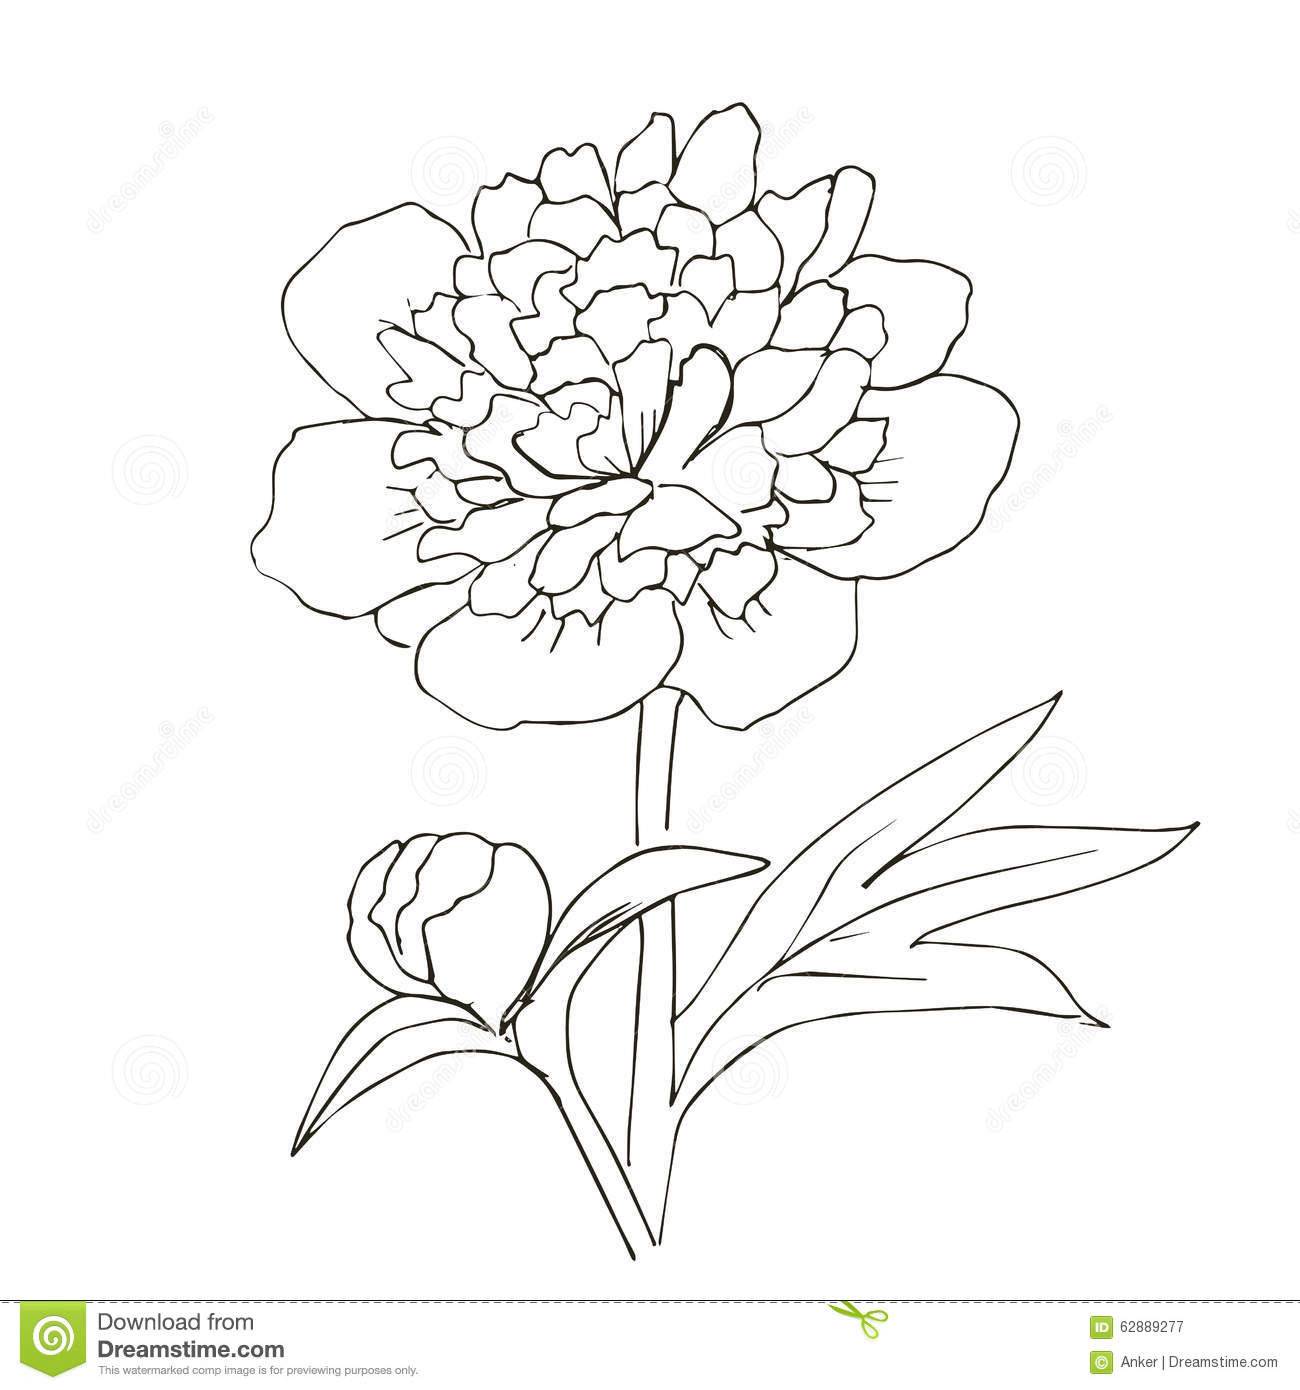 Jpg To Line Art : Hand drawn vector with peony flower stock image